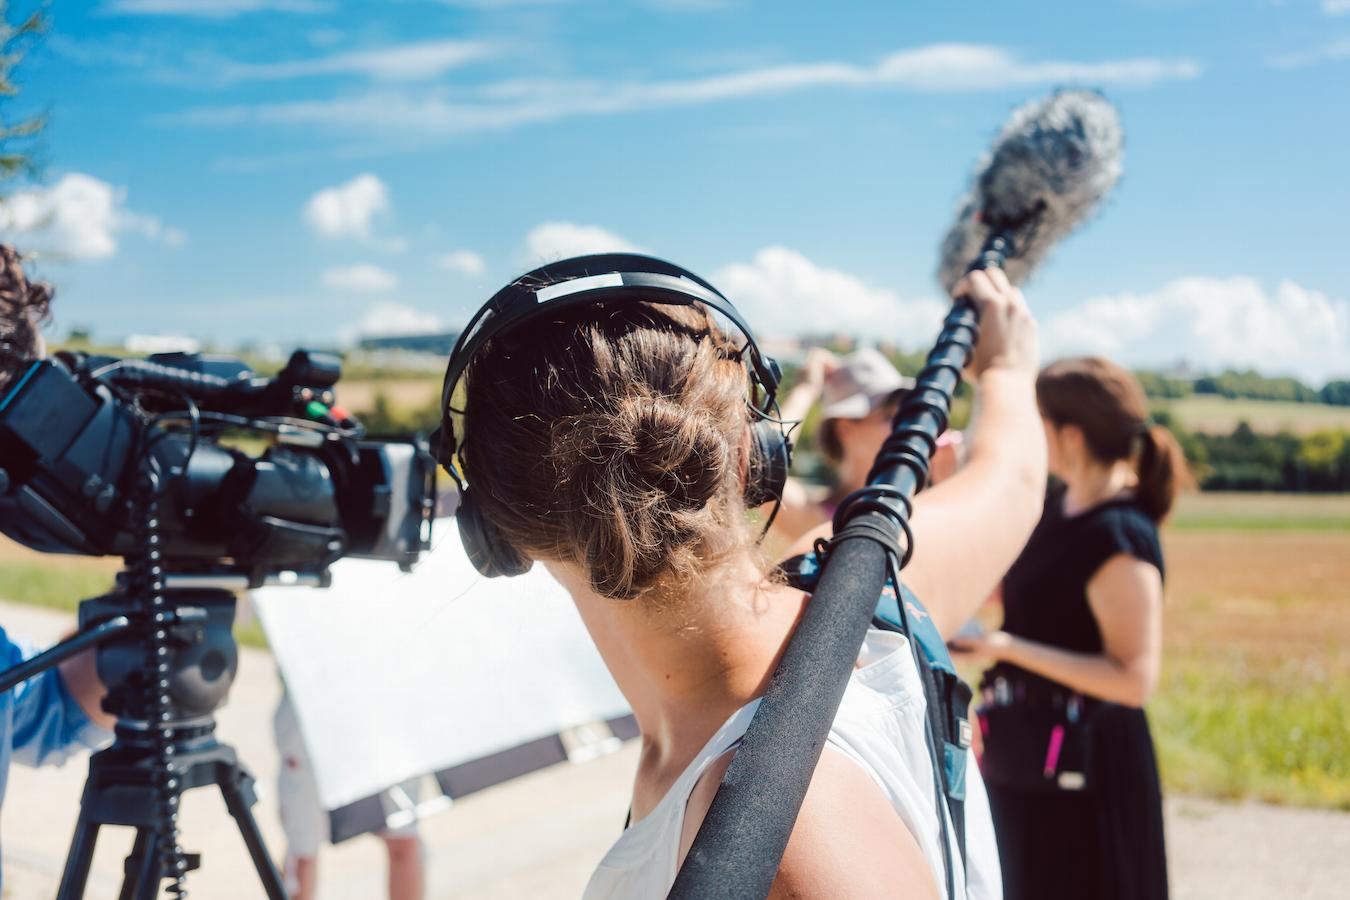 how to get good audio when filming